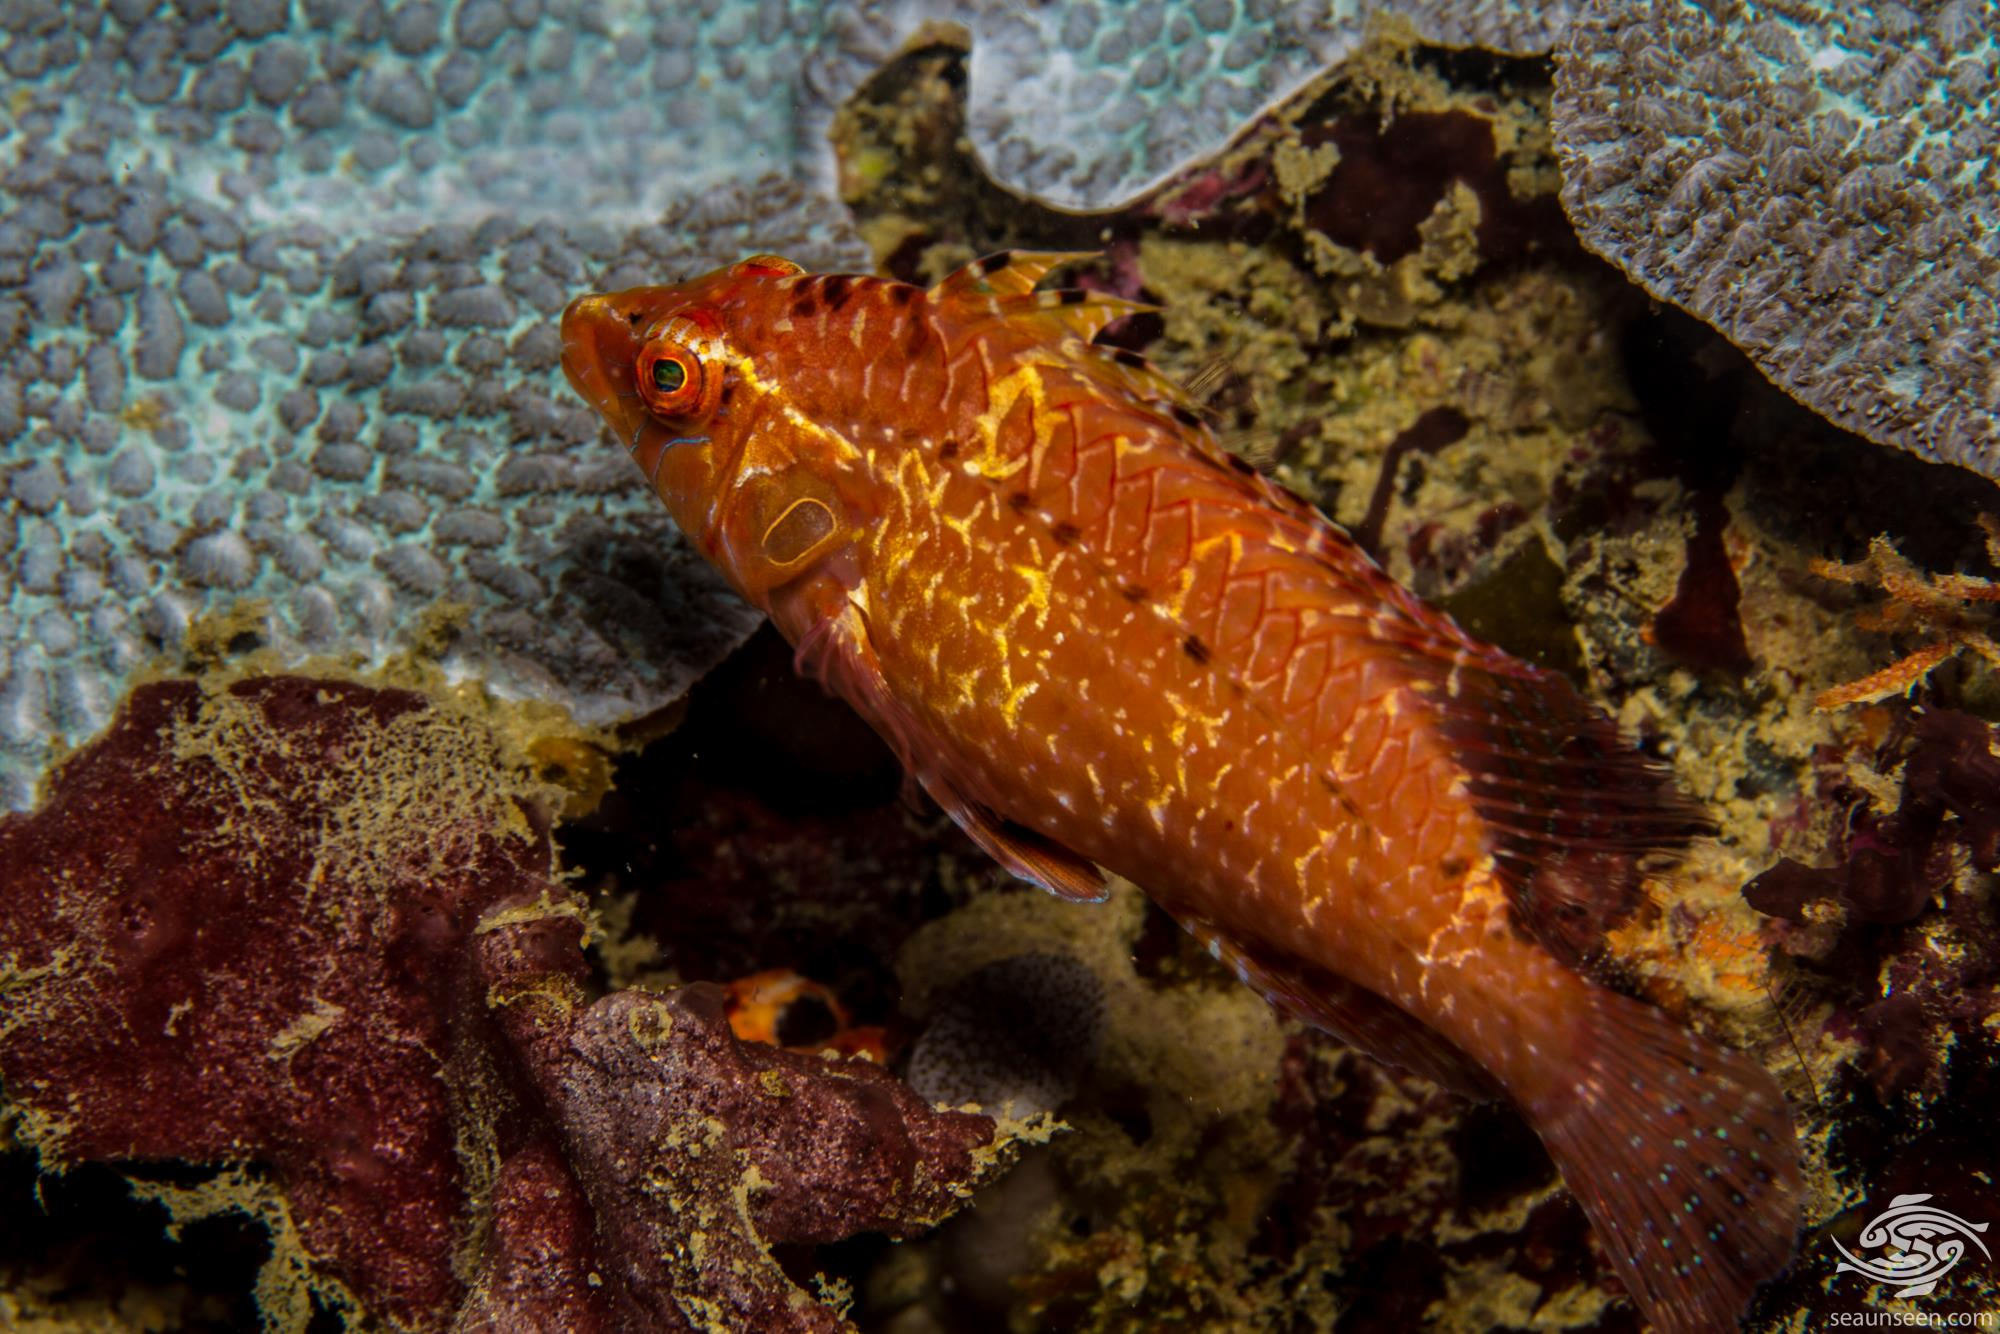 Cryptic wrasse Pteragogus cryptus is also known as the Indian Sneaky Wrasse